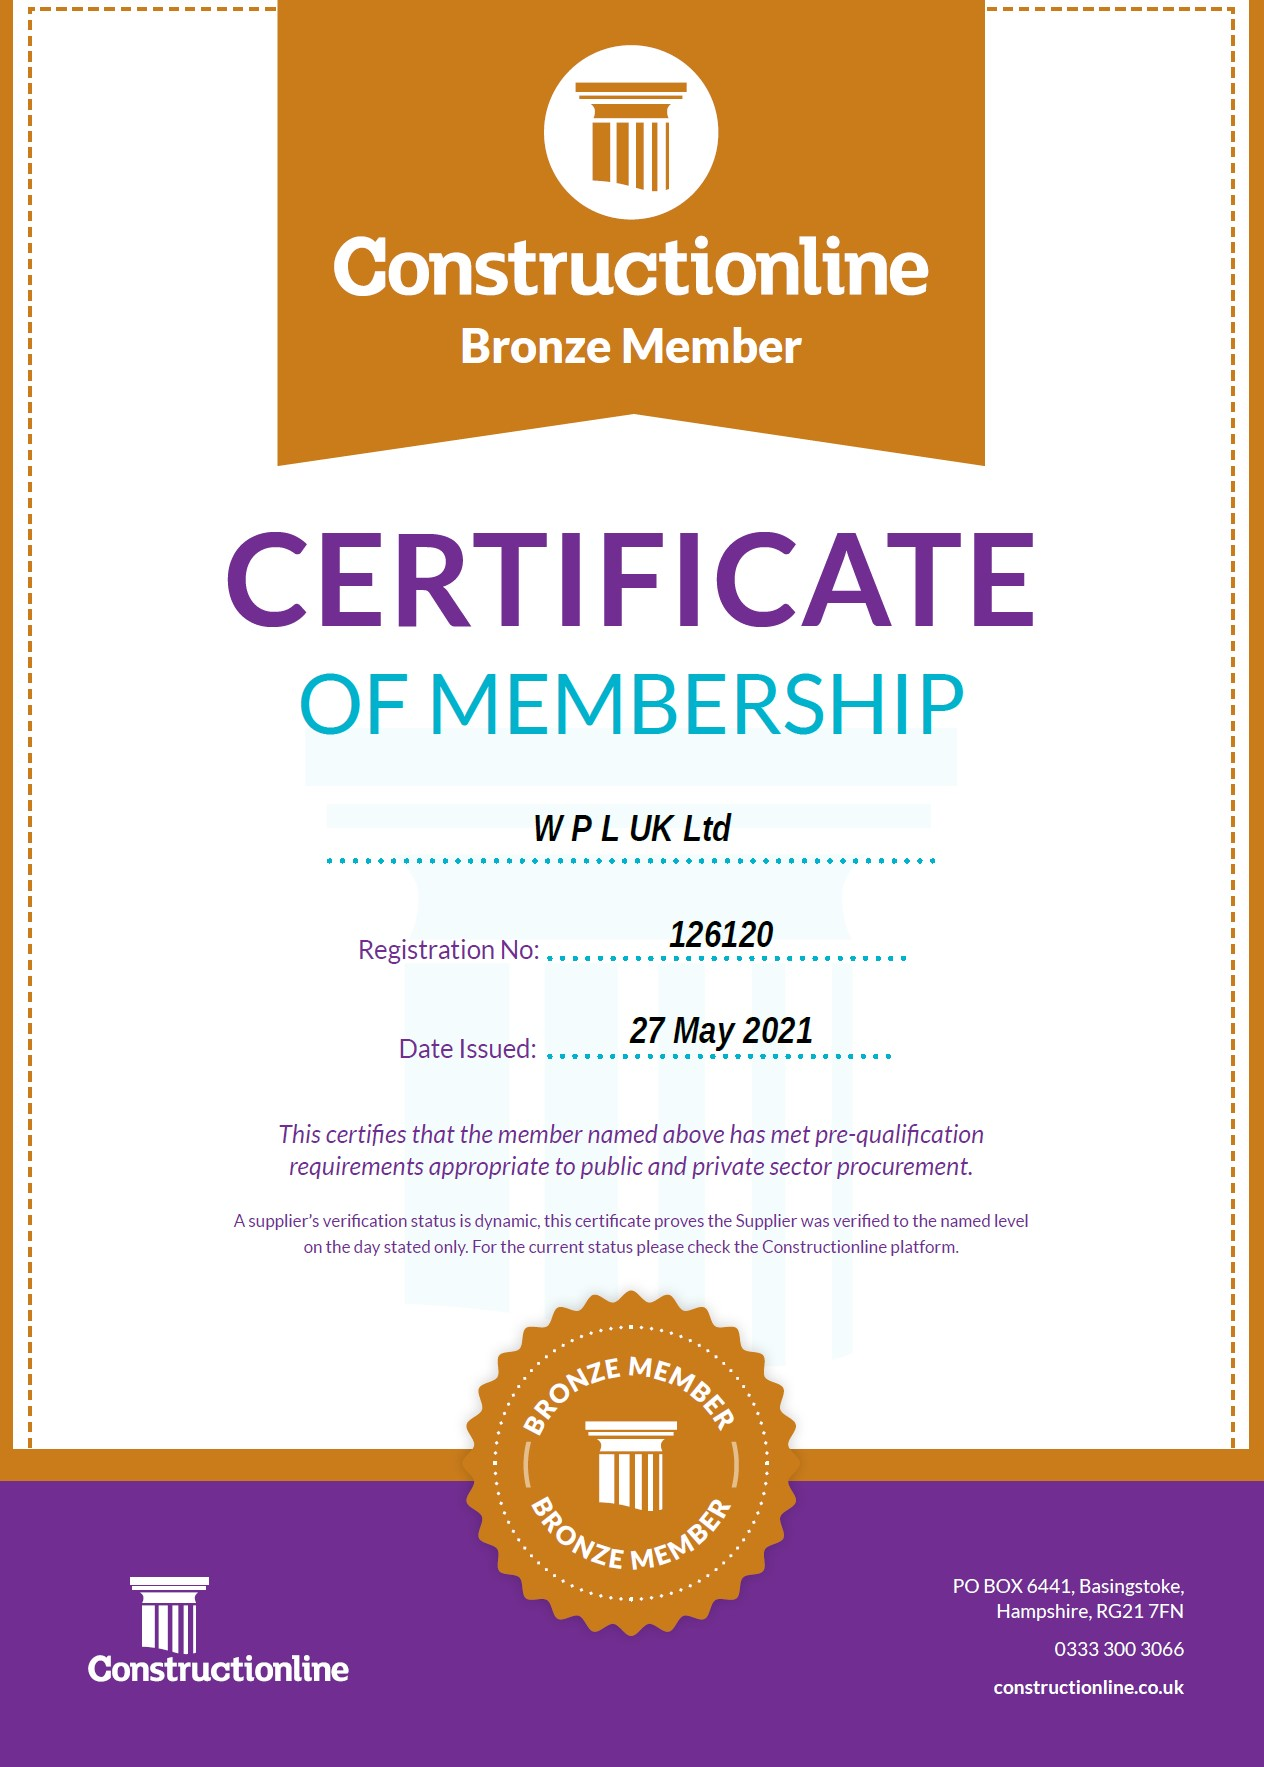 WPLUK Constructionline BRONZE Certificate Issued 27th May 2021